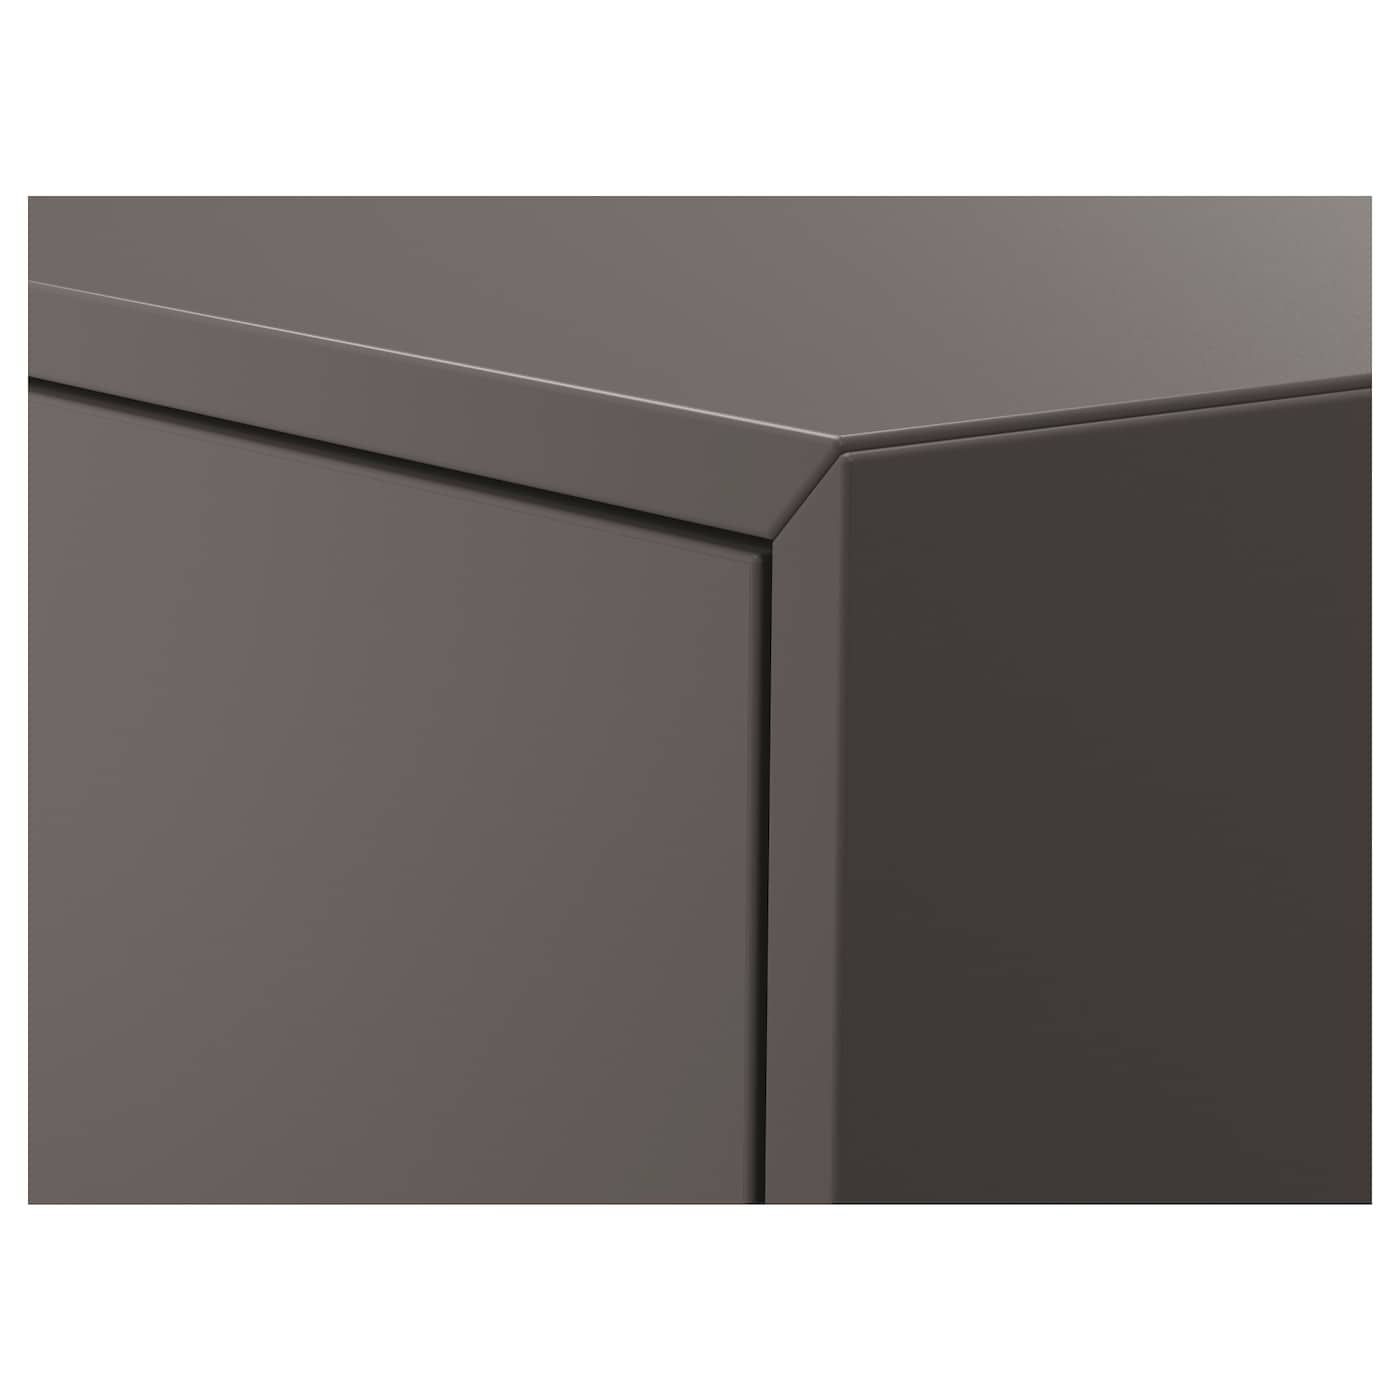 EKET Wall-mounted cabinet combination, dark grey, 80x35x210 cm